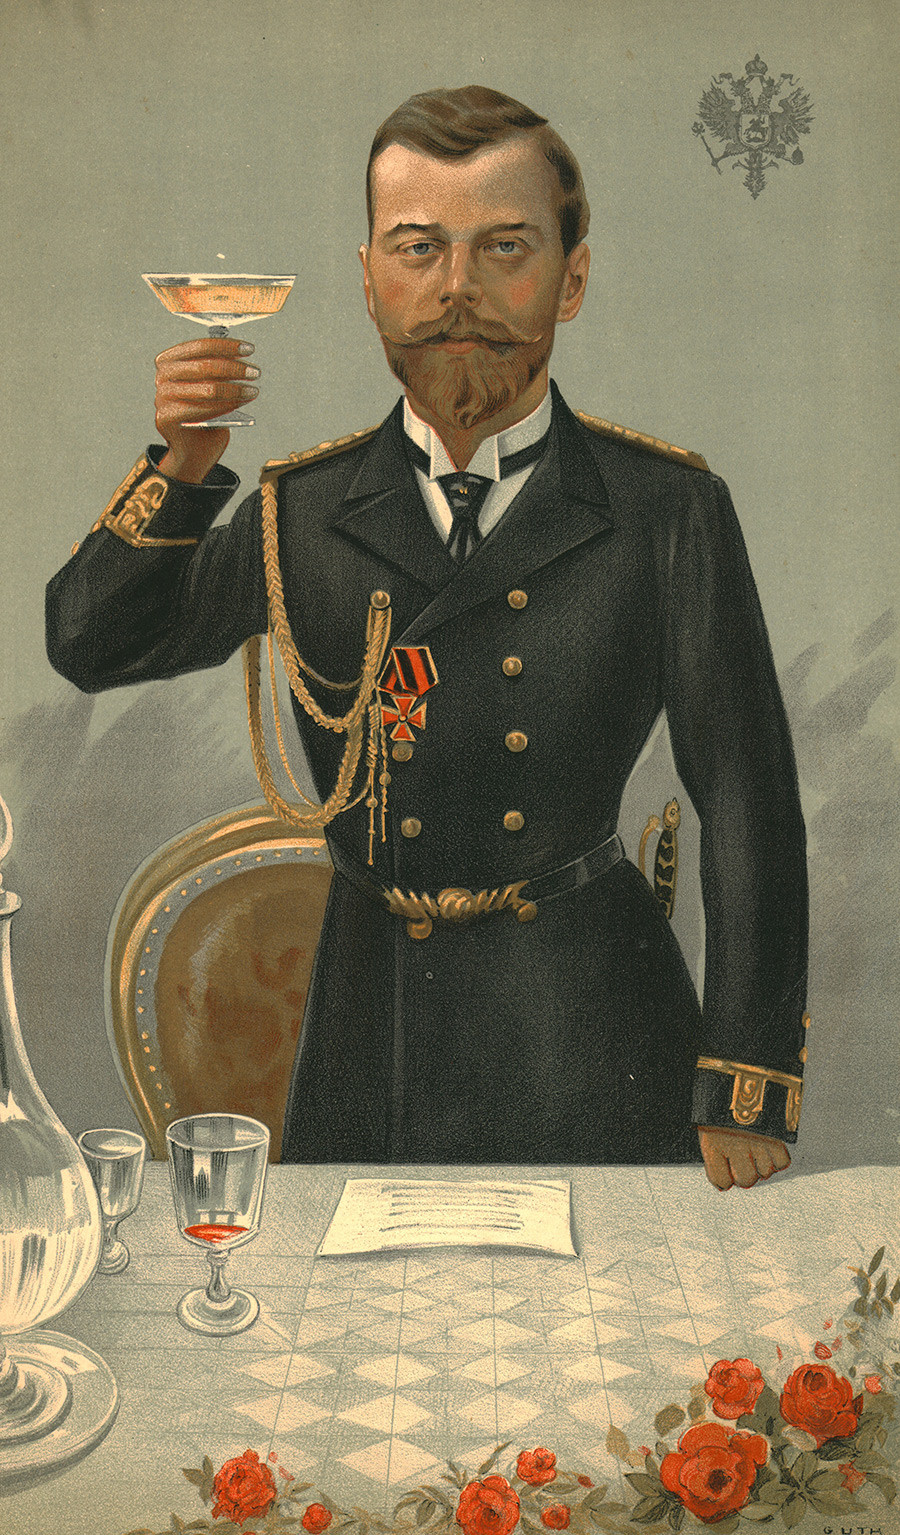 'The Little Father', 1897. Portrait of Tsar Nicholas II of Russia (1868-1918), raising a toast. Published in Vanity Fair, 21 October 1897. Artist Jean Baptiste Guth.